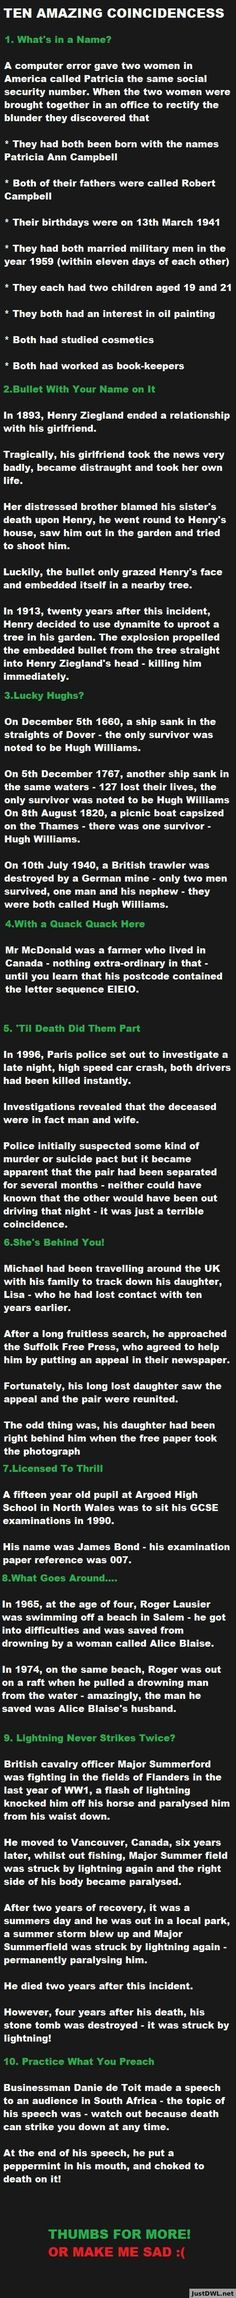 Ten Amazing Coincidences. Believe it?